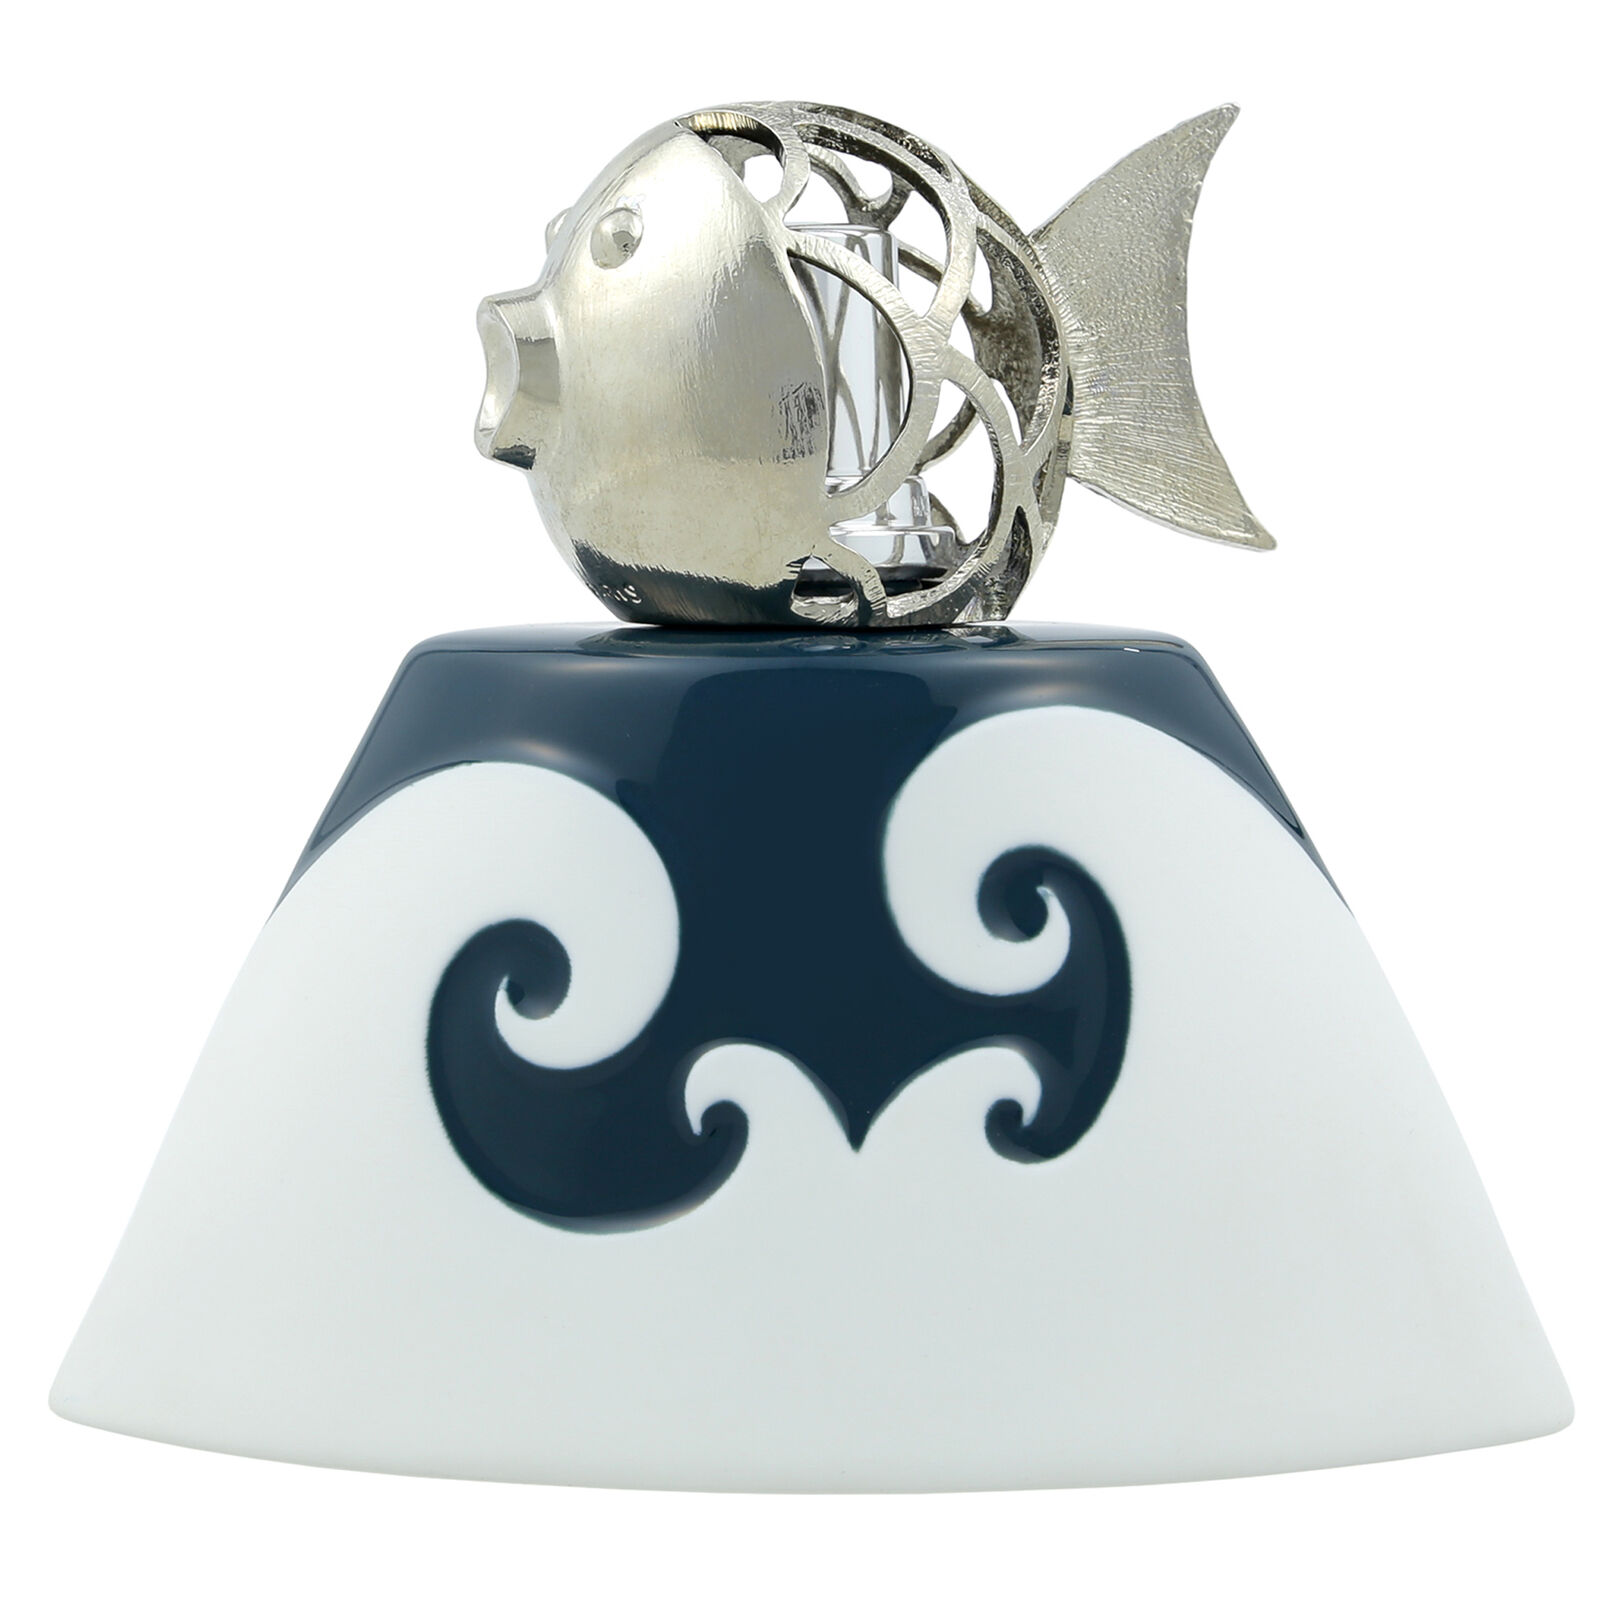 Lampe Berger Paris Duftlampe 5465 Nautilus Les Edition Art Sonderotition